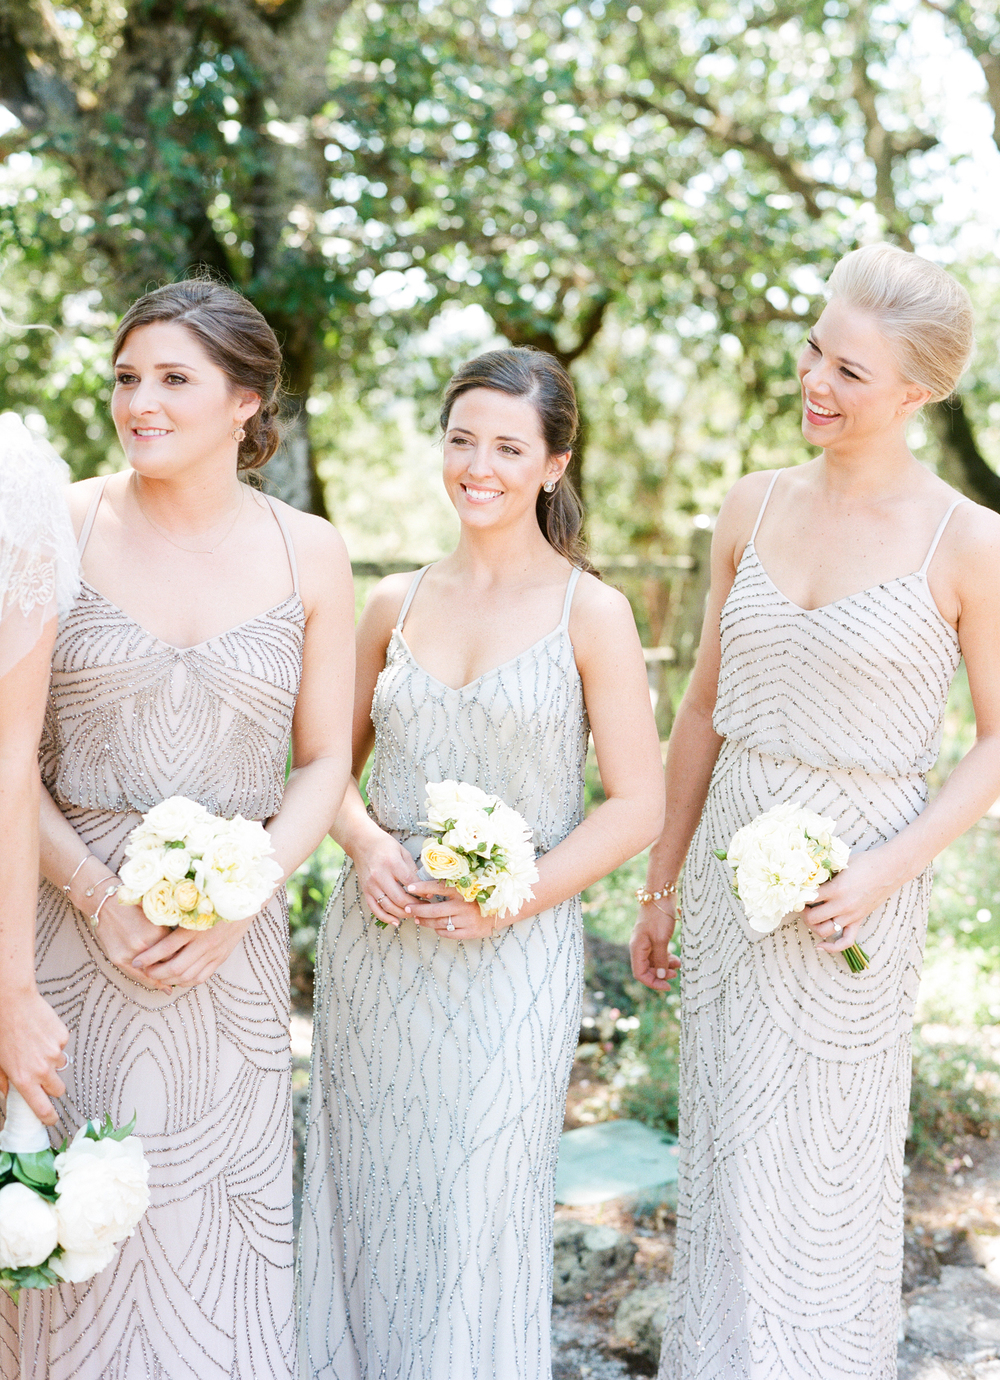 Sylvie-Gil-film-destination-photography-Kunde-winery-Napa-Valley-elegant-shabby-chic-bridesmaids-cream-sequined-gowns